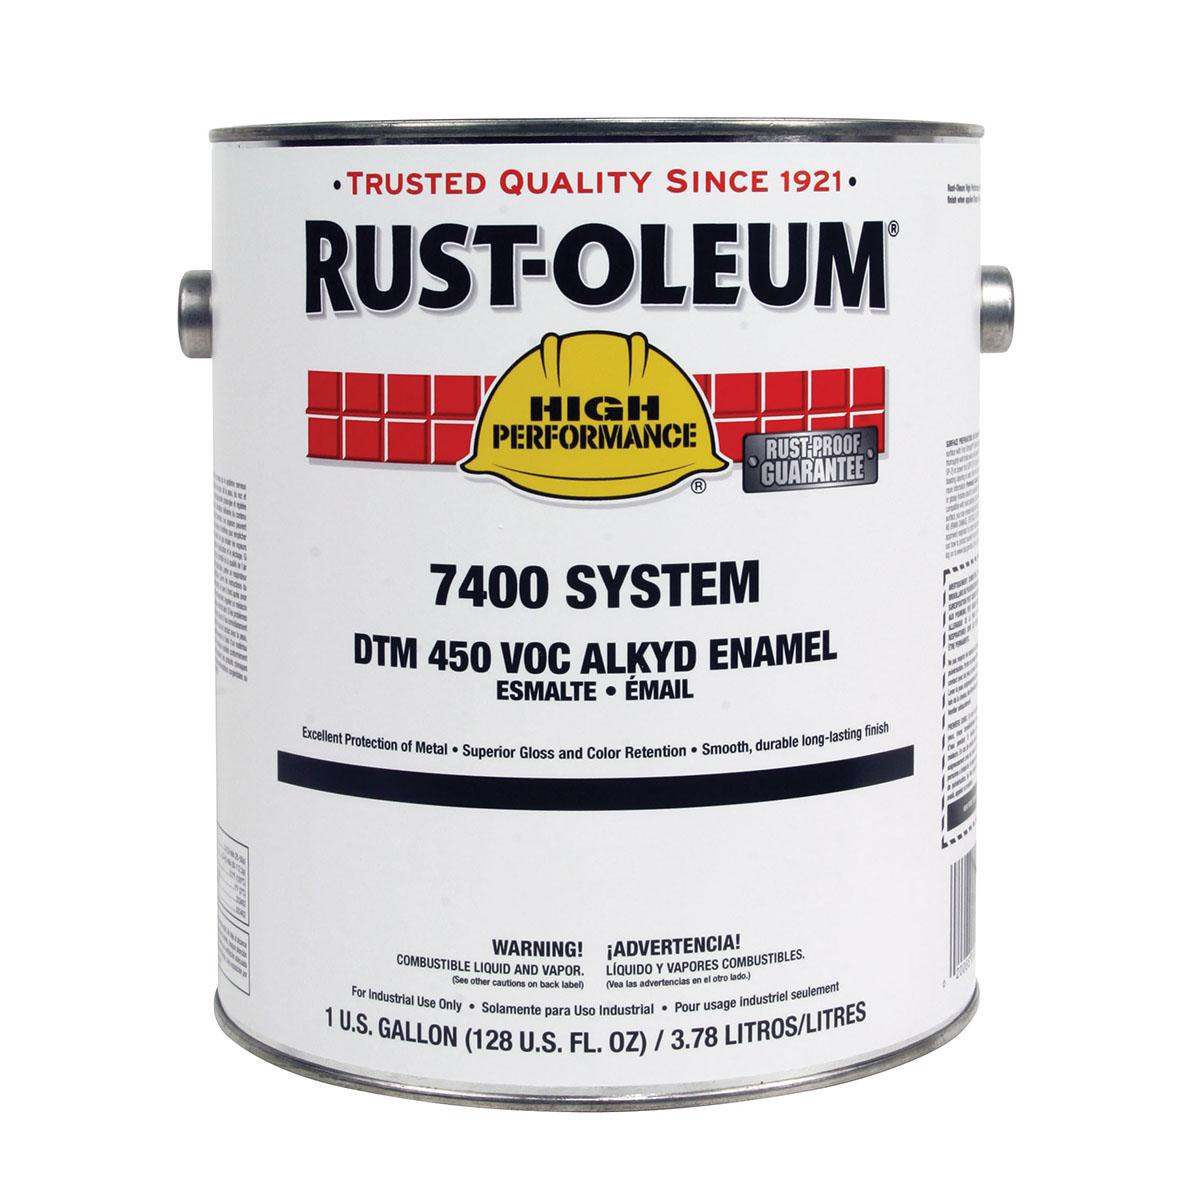 RUST-OLEUM 7400 ALKYD ENAMEL, MACHINE TOOL GRAY, 1 G